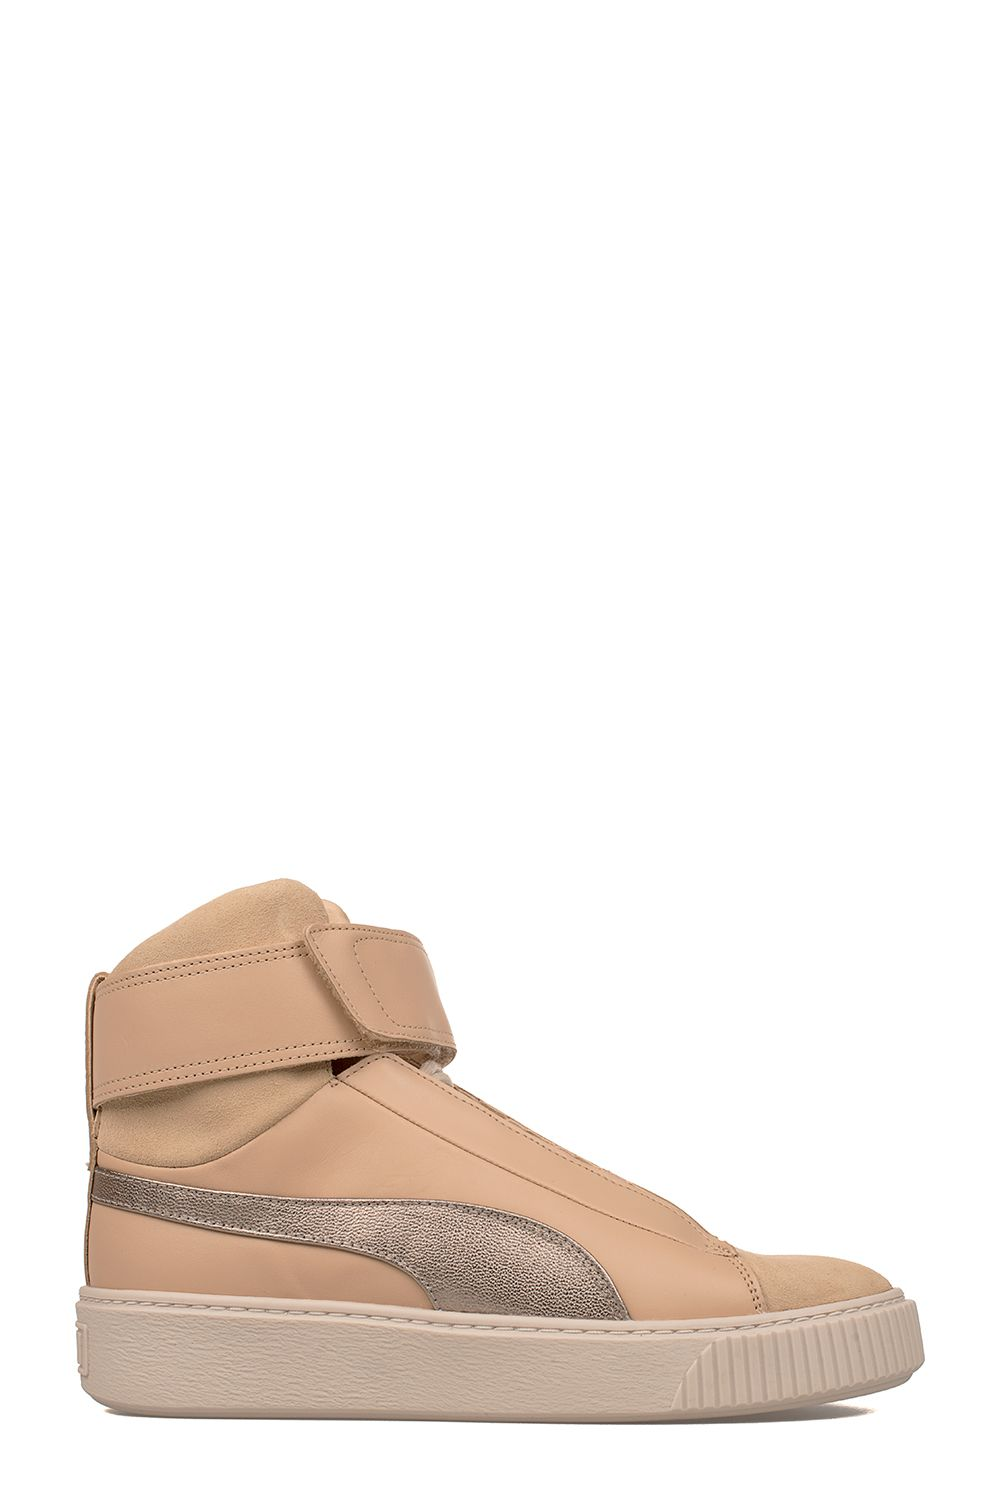 Sand Platform Suede High-top Sneakers